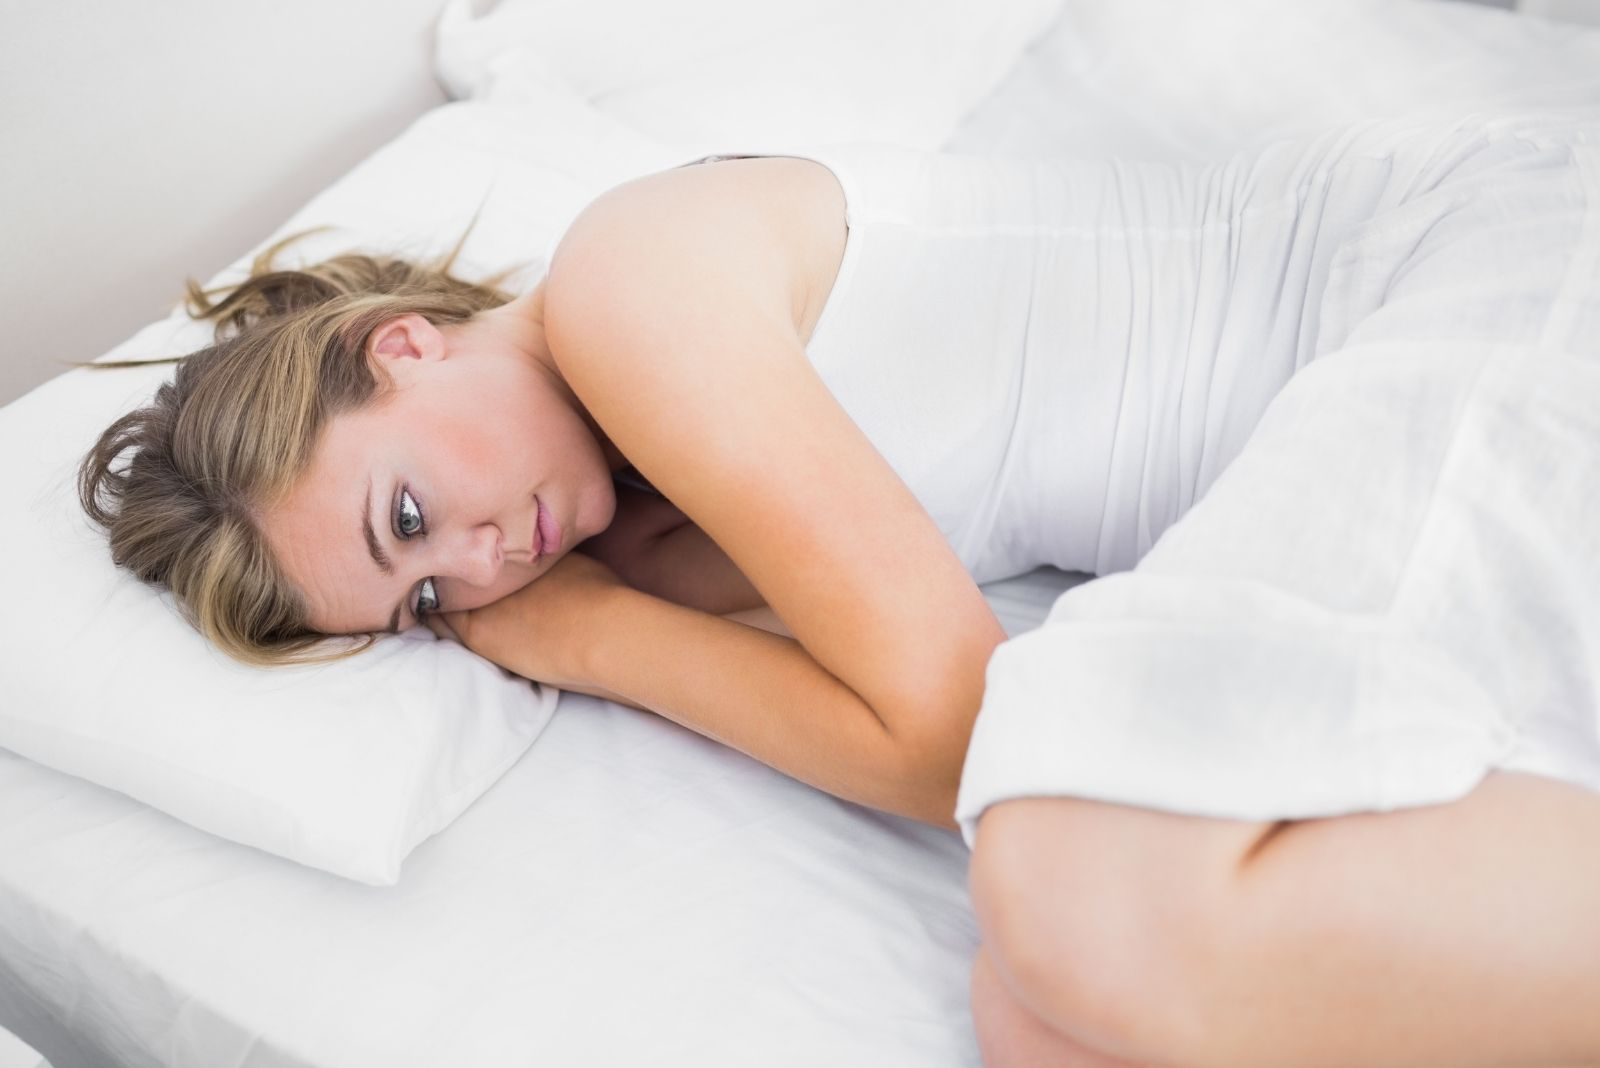 blonde woman thinking lying down in while linen wearing white dress